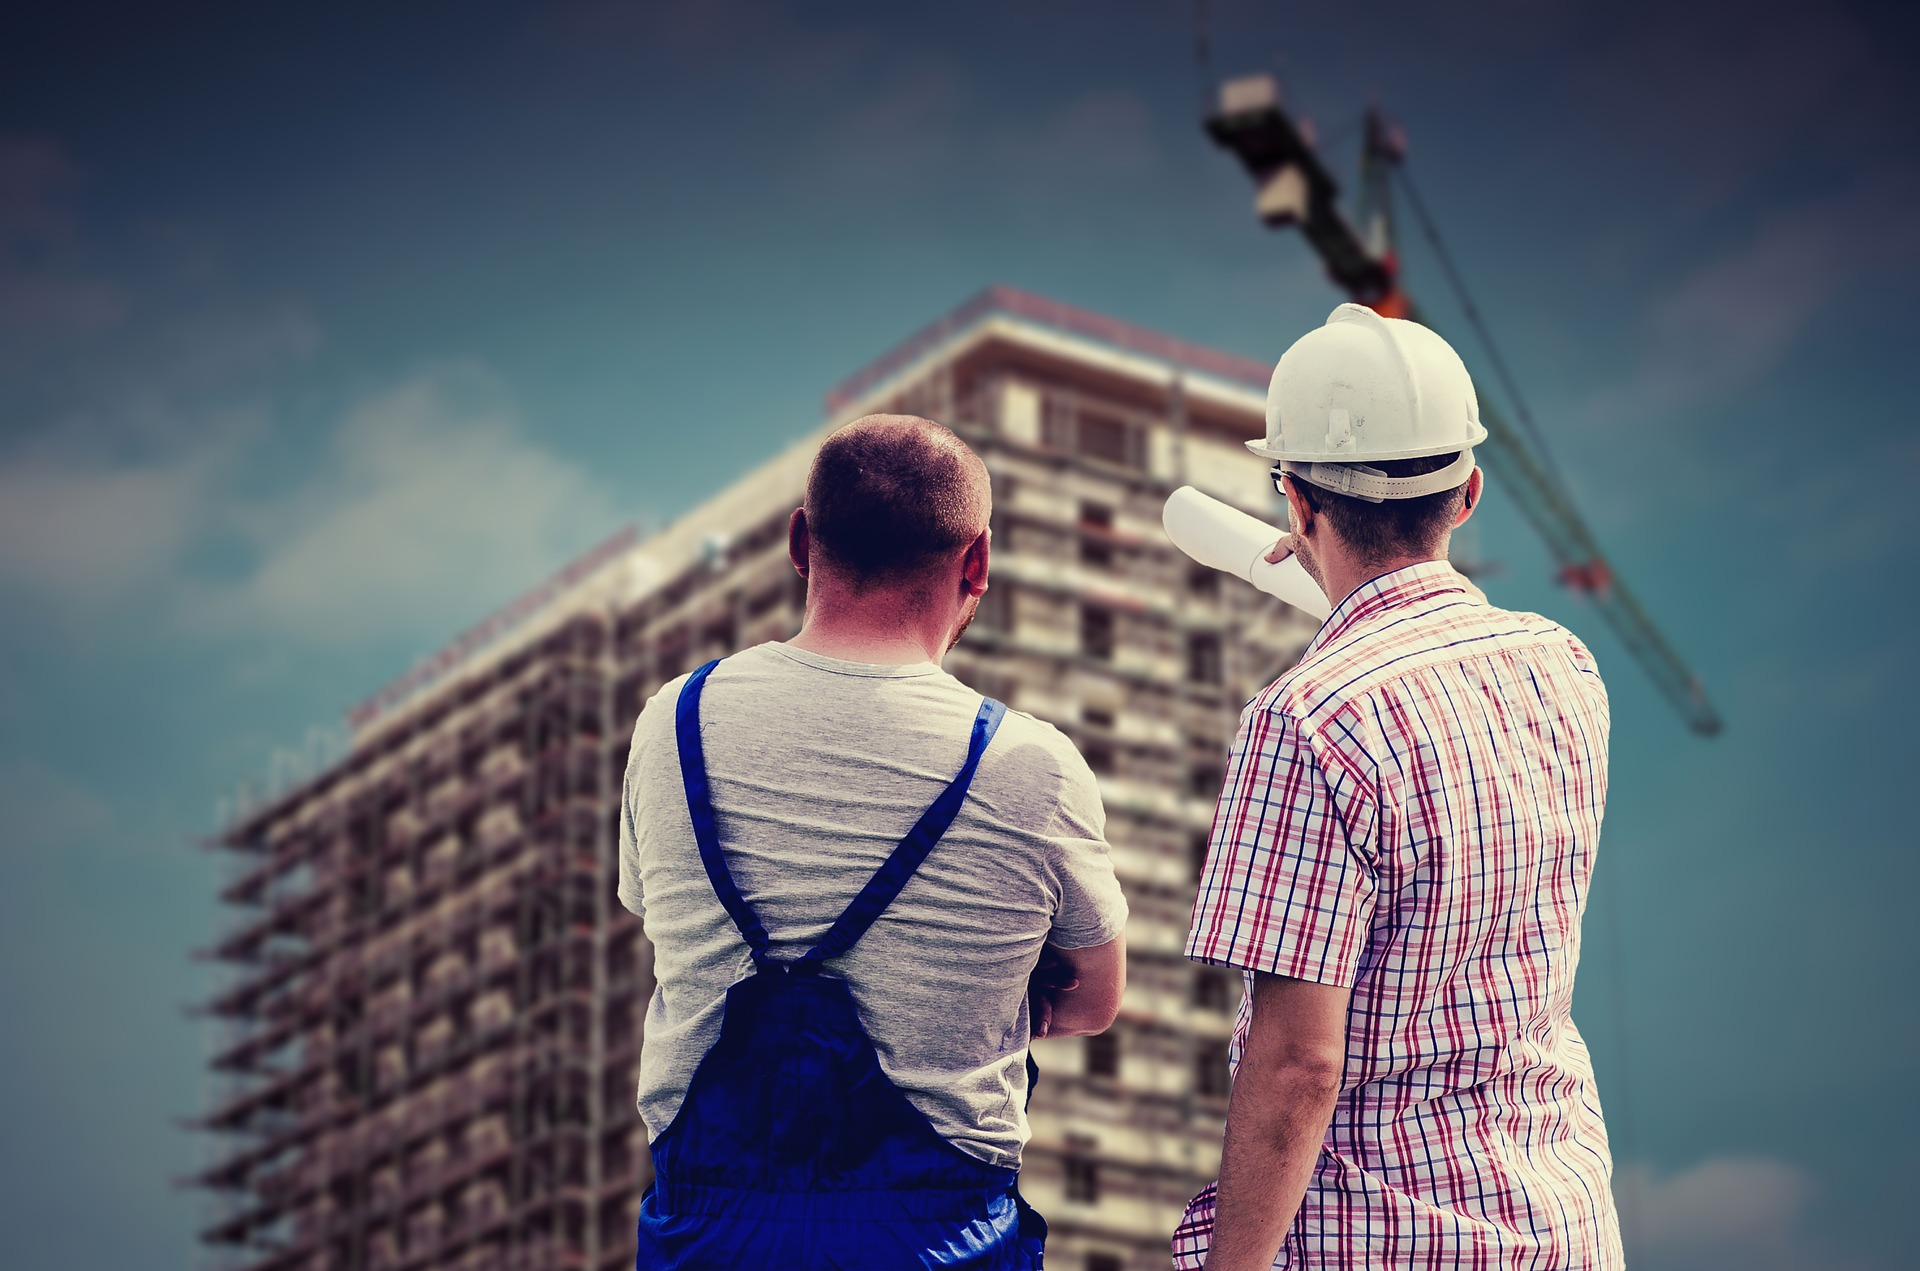 Two men, one in a white hat and the other in overalls, looking at a new apartment building